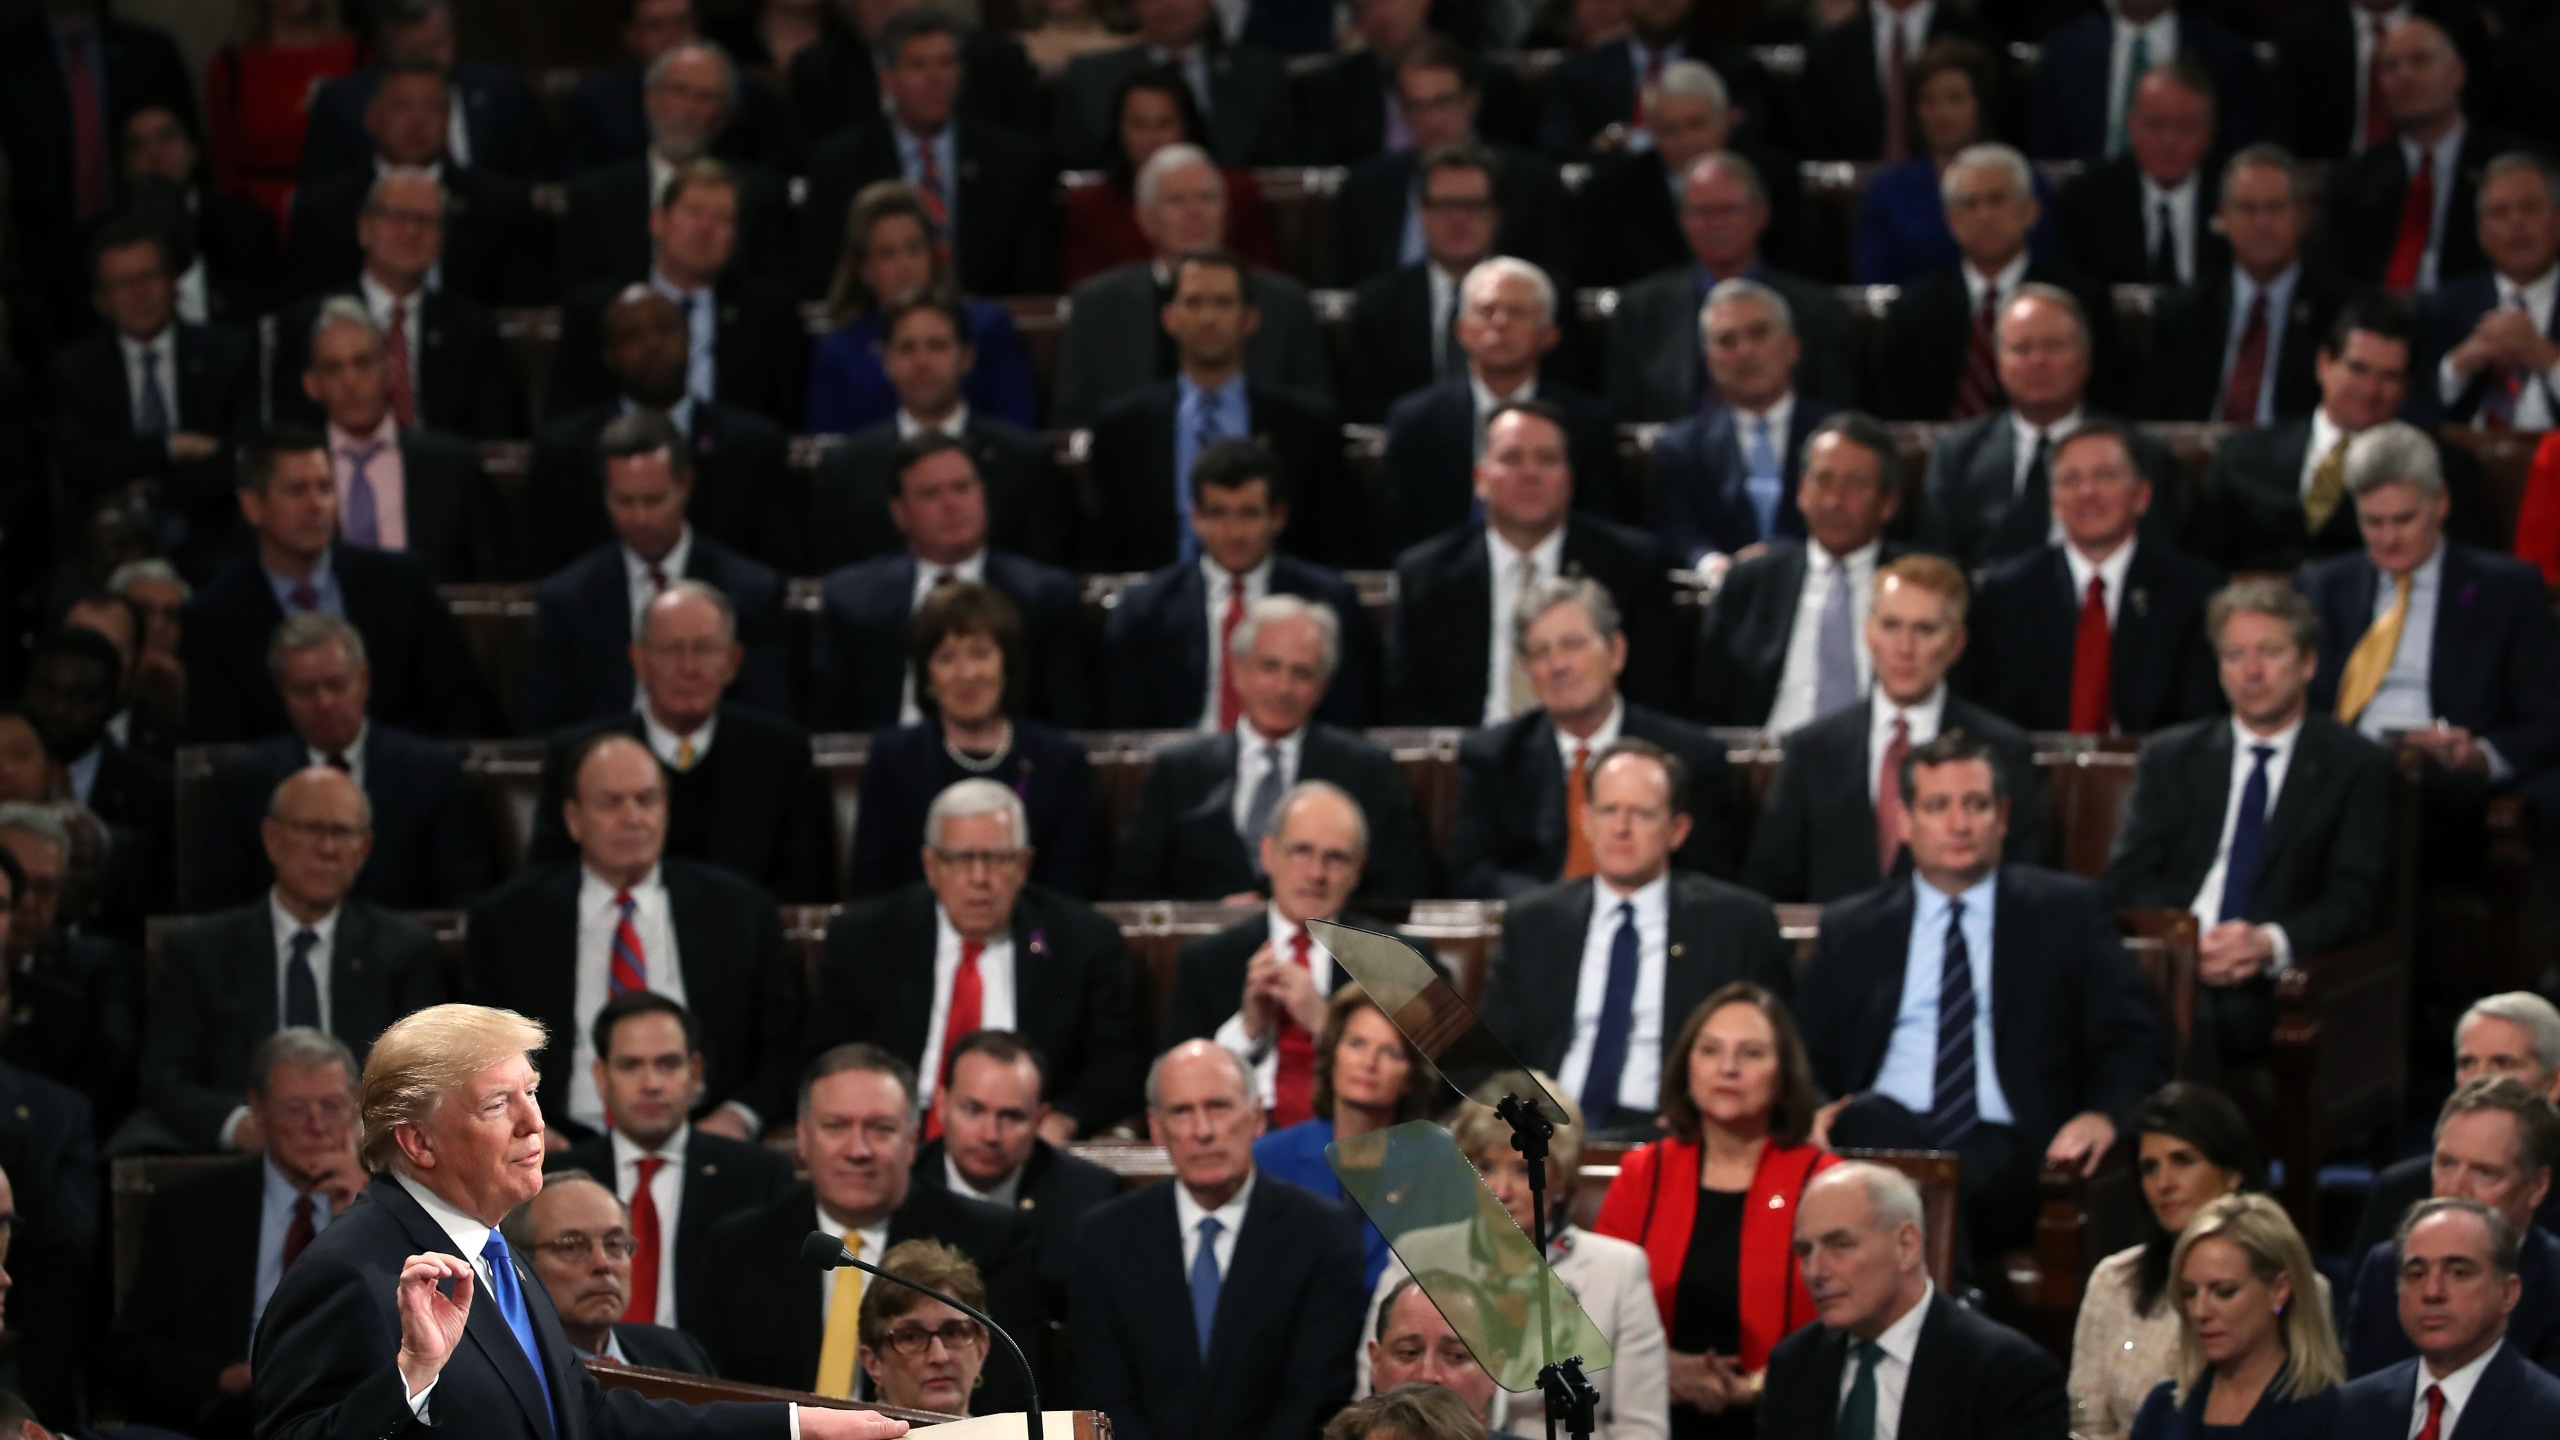 President Trump Addresses The Nation In His First State Of The Union Address To Joint Session Of Congress_625867